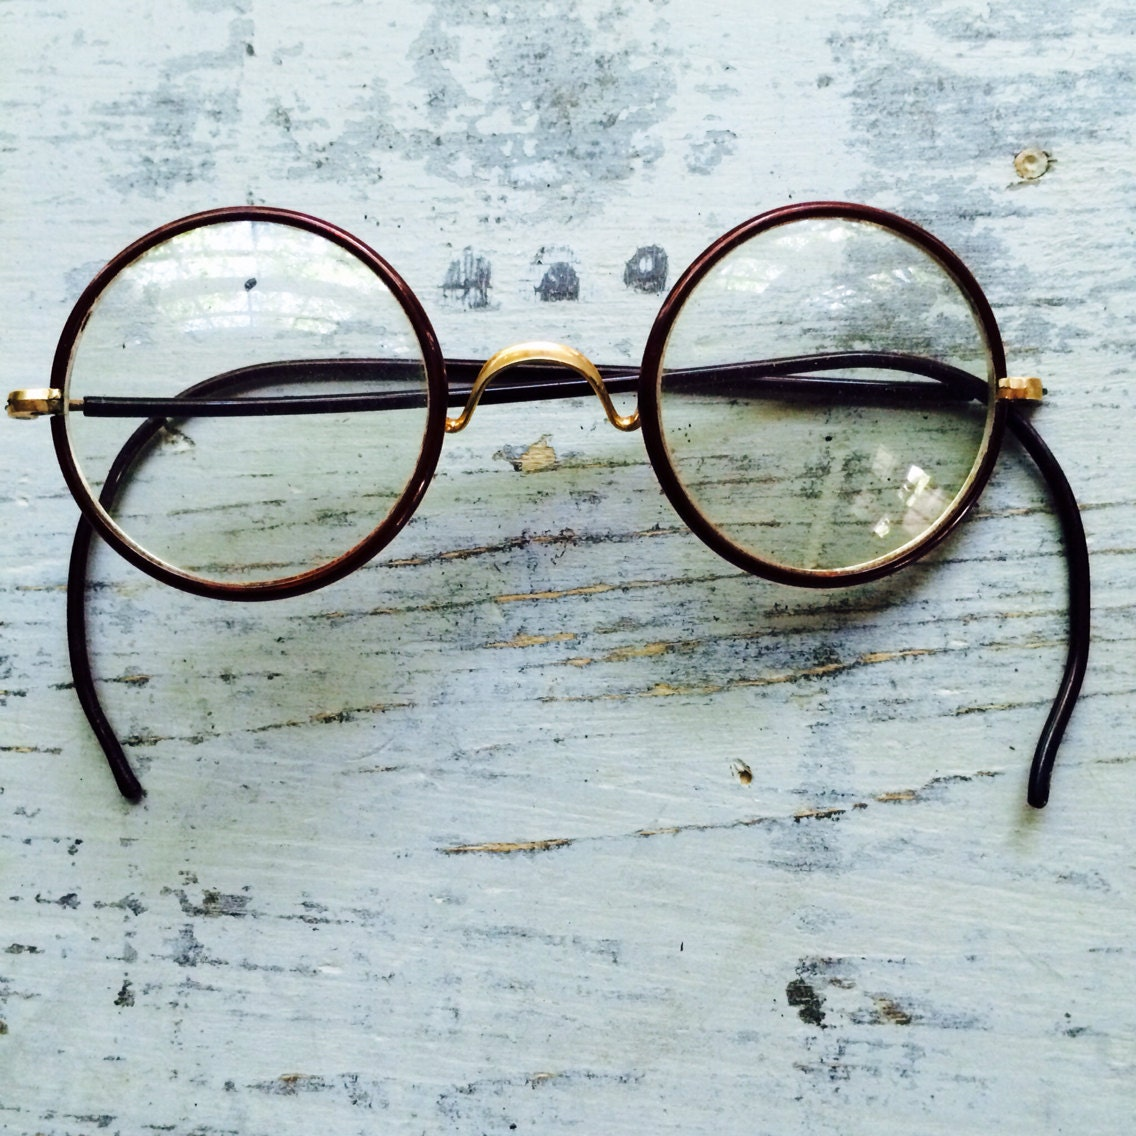 Eyeglass Frame Earpiece : Vintage Round Frame Glasses // MH Harris Wire Rim Earpiece